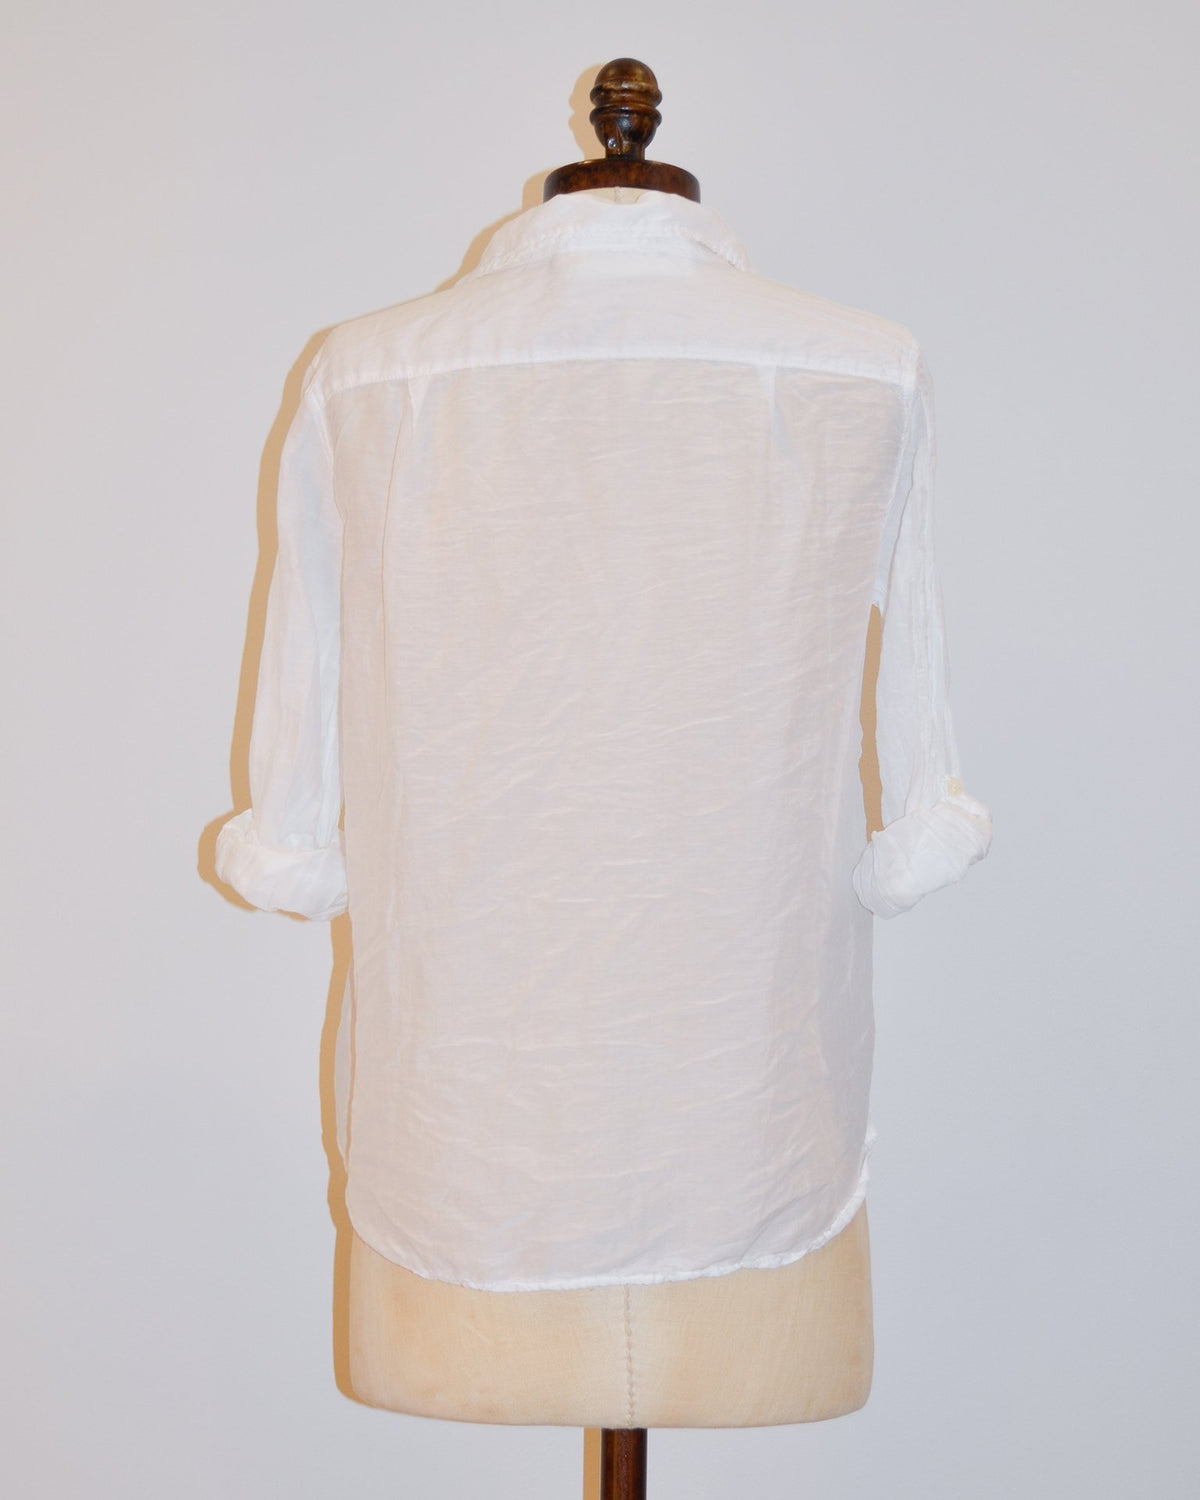 CP Shades Clothing Jay Blouse in White Cotton Silk